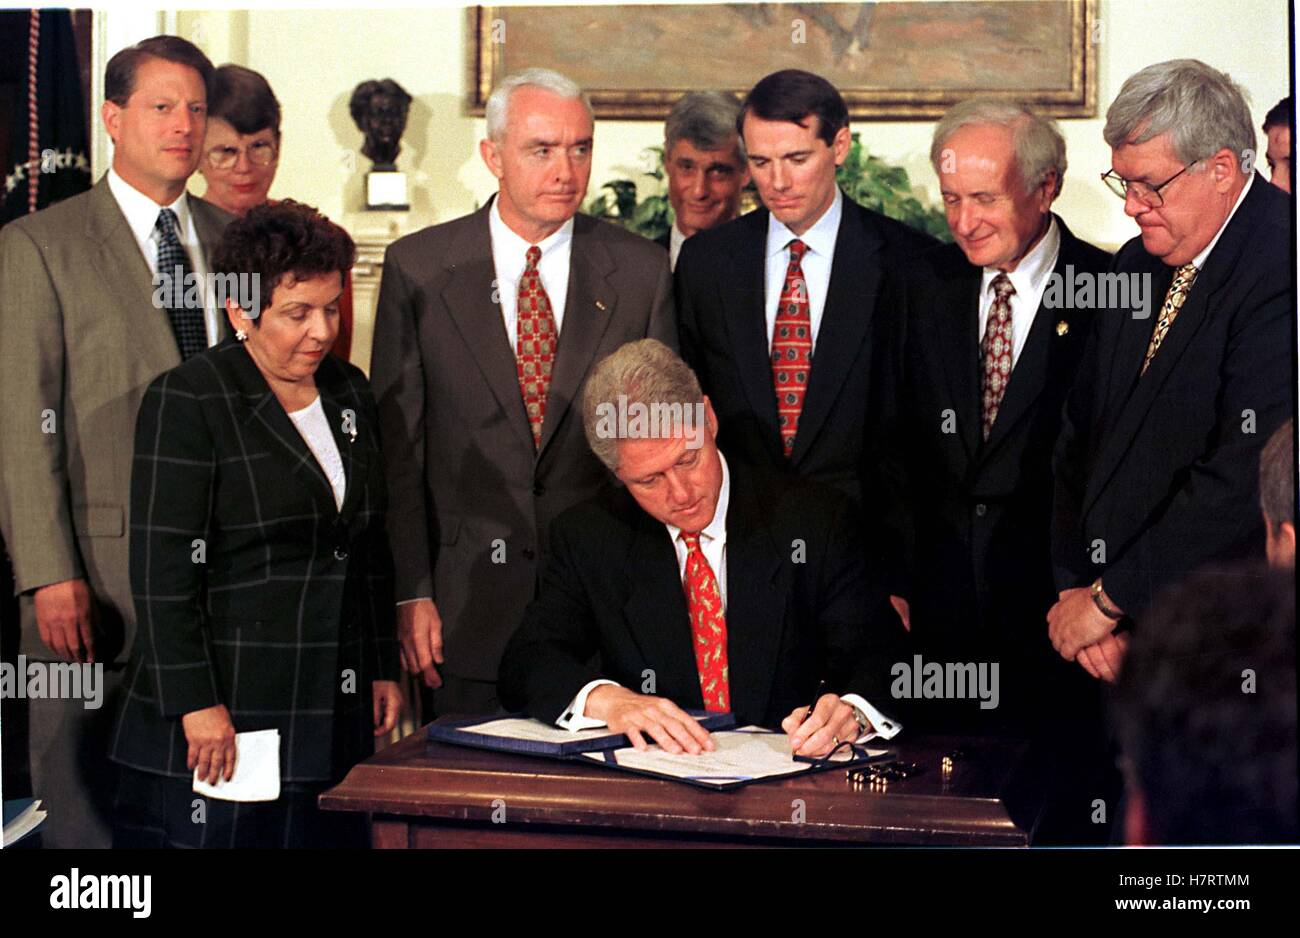 United States President Bill Clinton signs the Drug-Free Communities Act of 1997 at the White House in Washington, - Stock Image